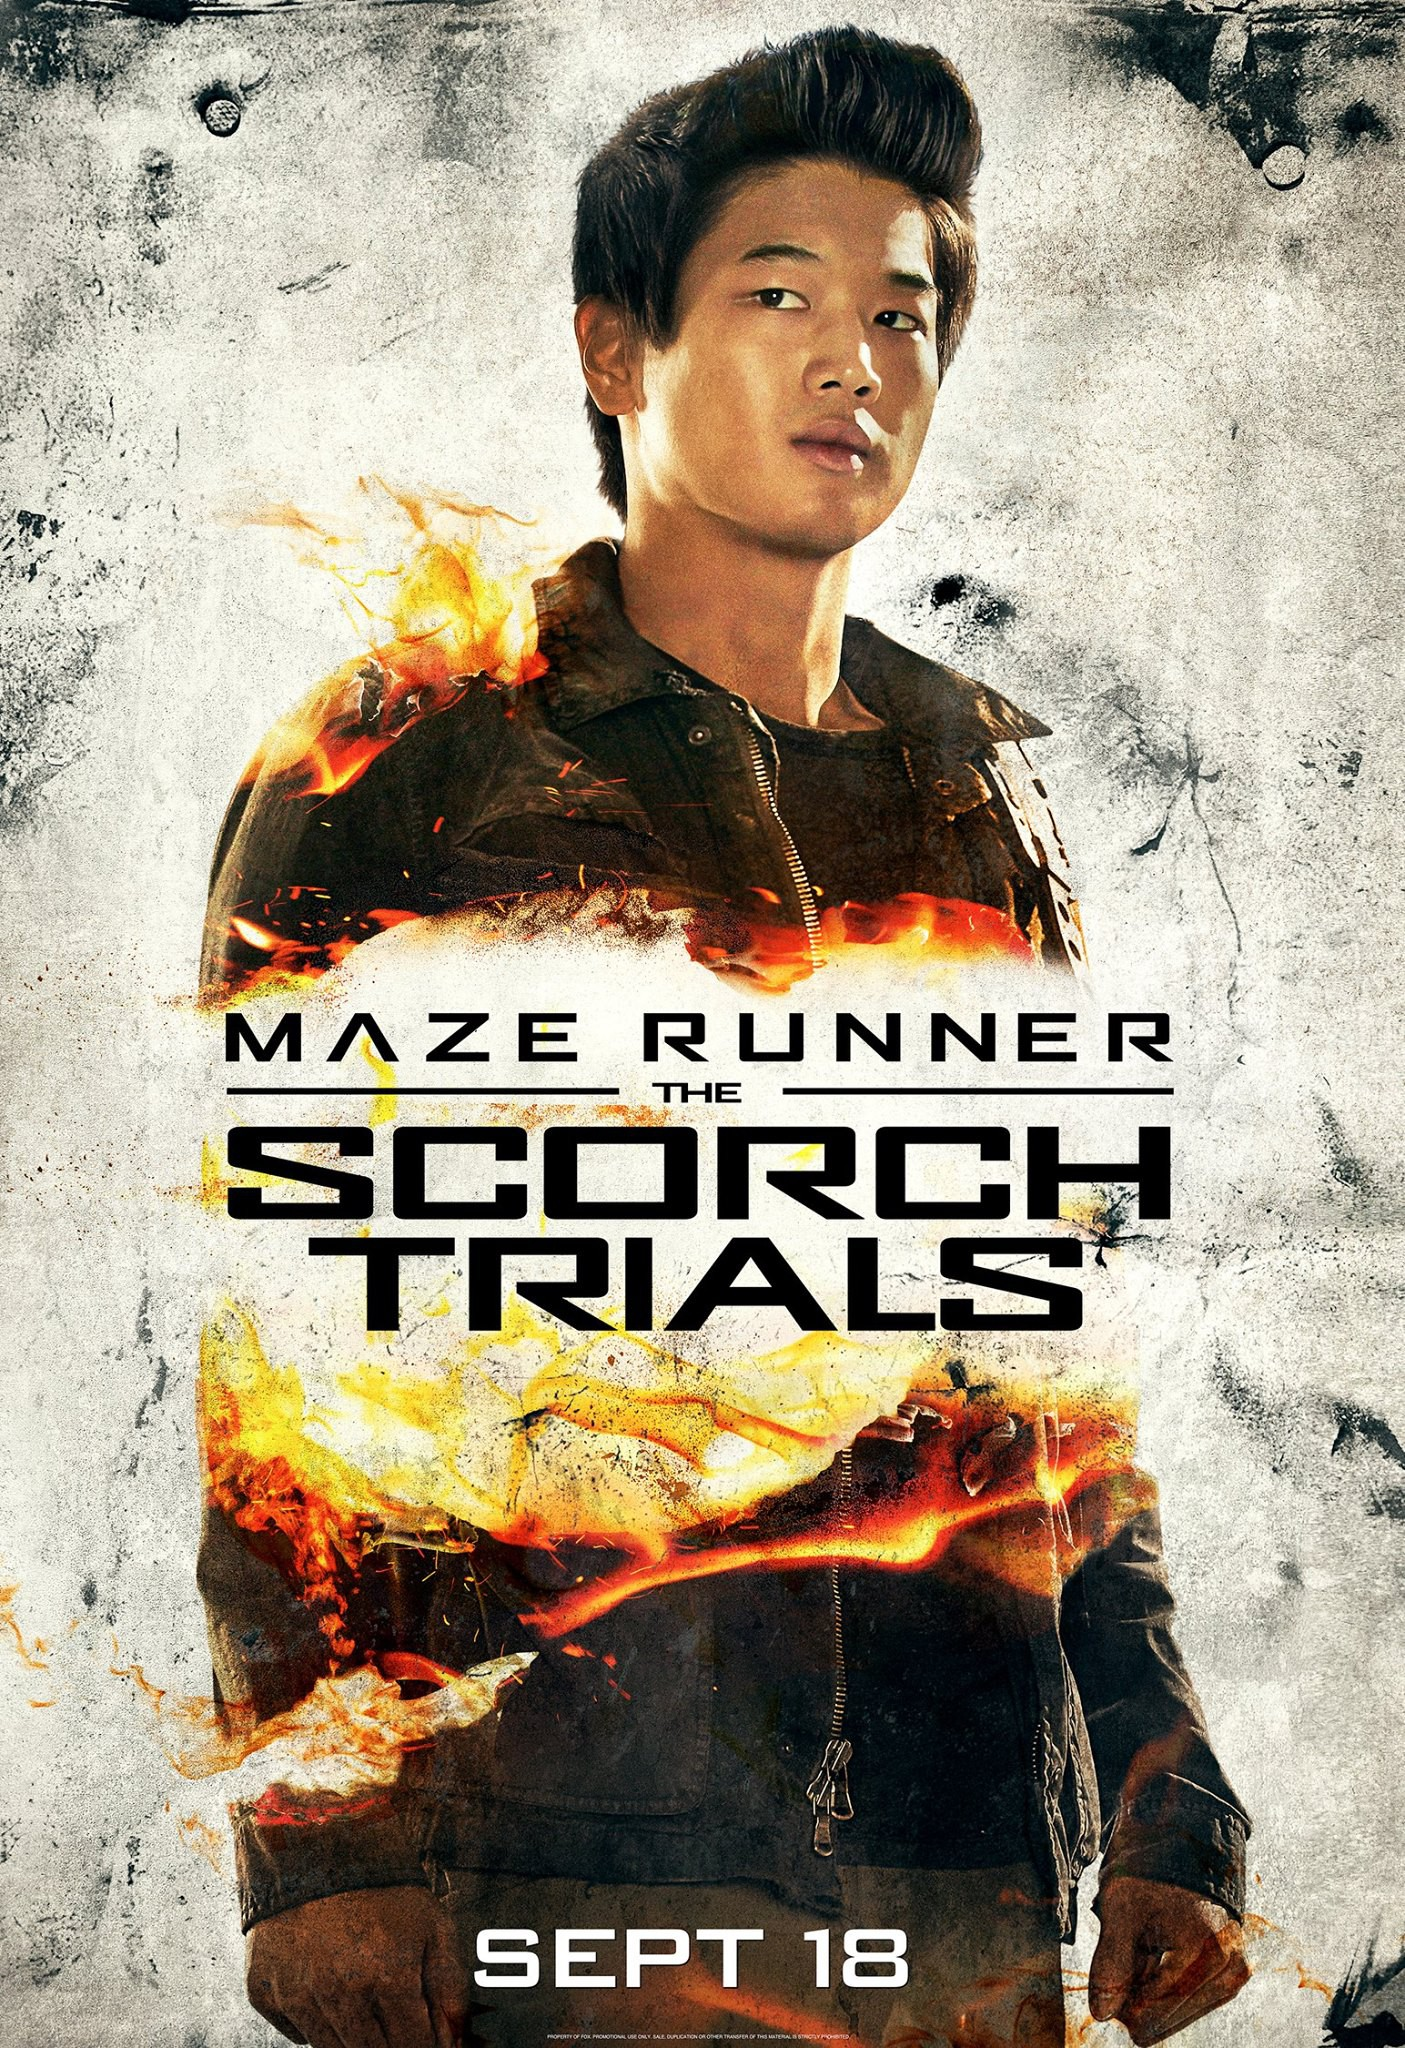 Maze Runner The Scorch Trials-23Julho2015